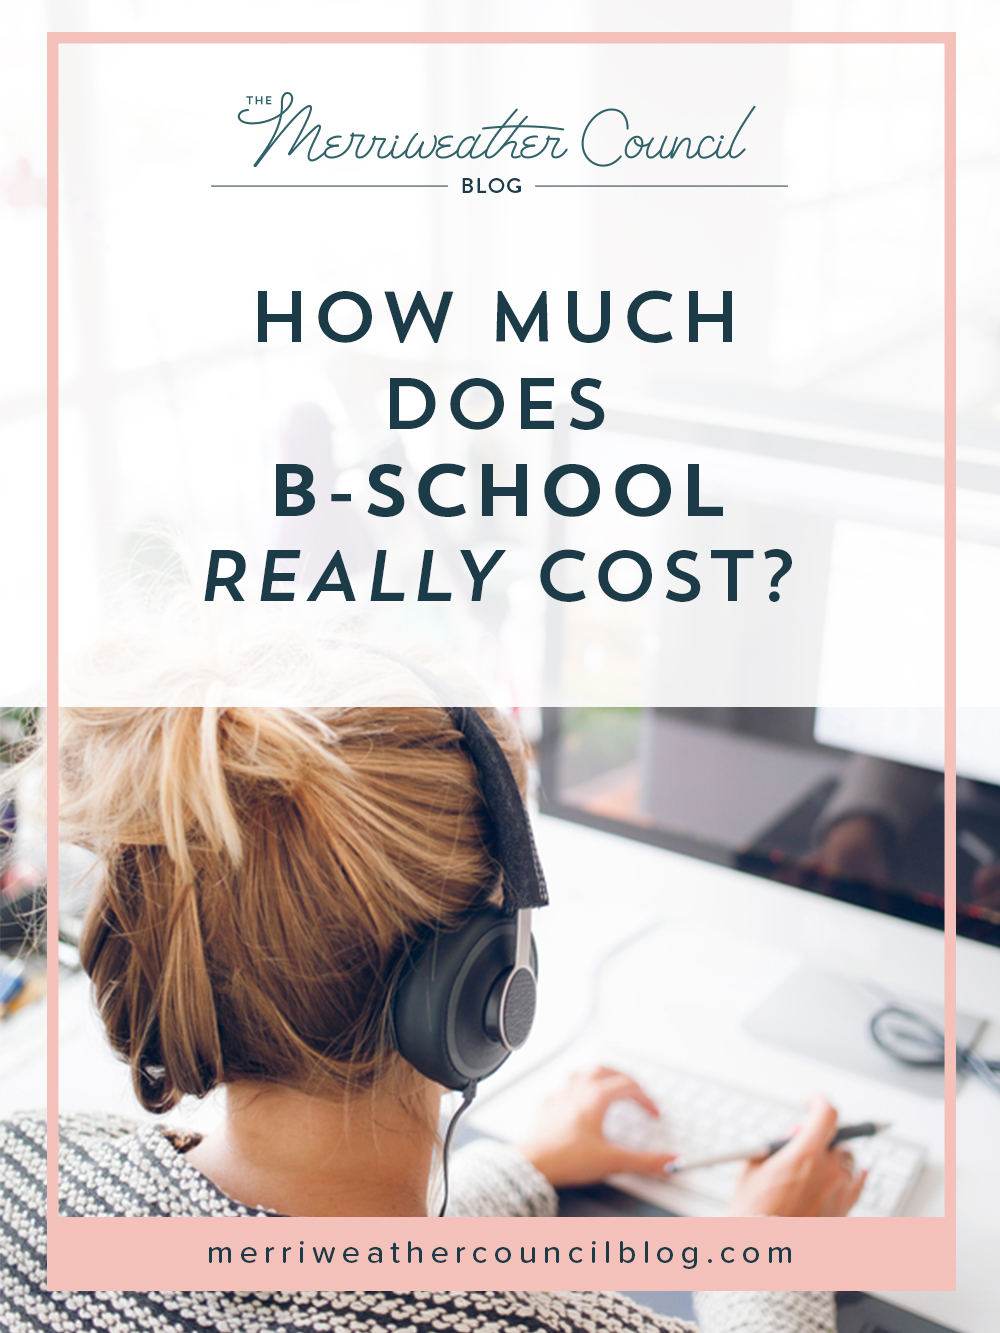 the real cost of B-school | the merriweather council blog